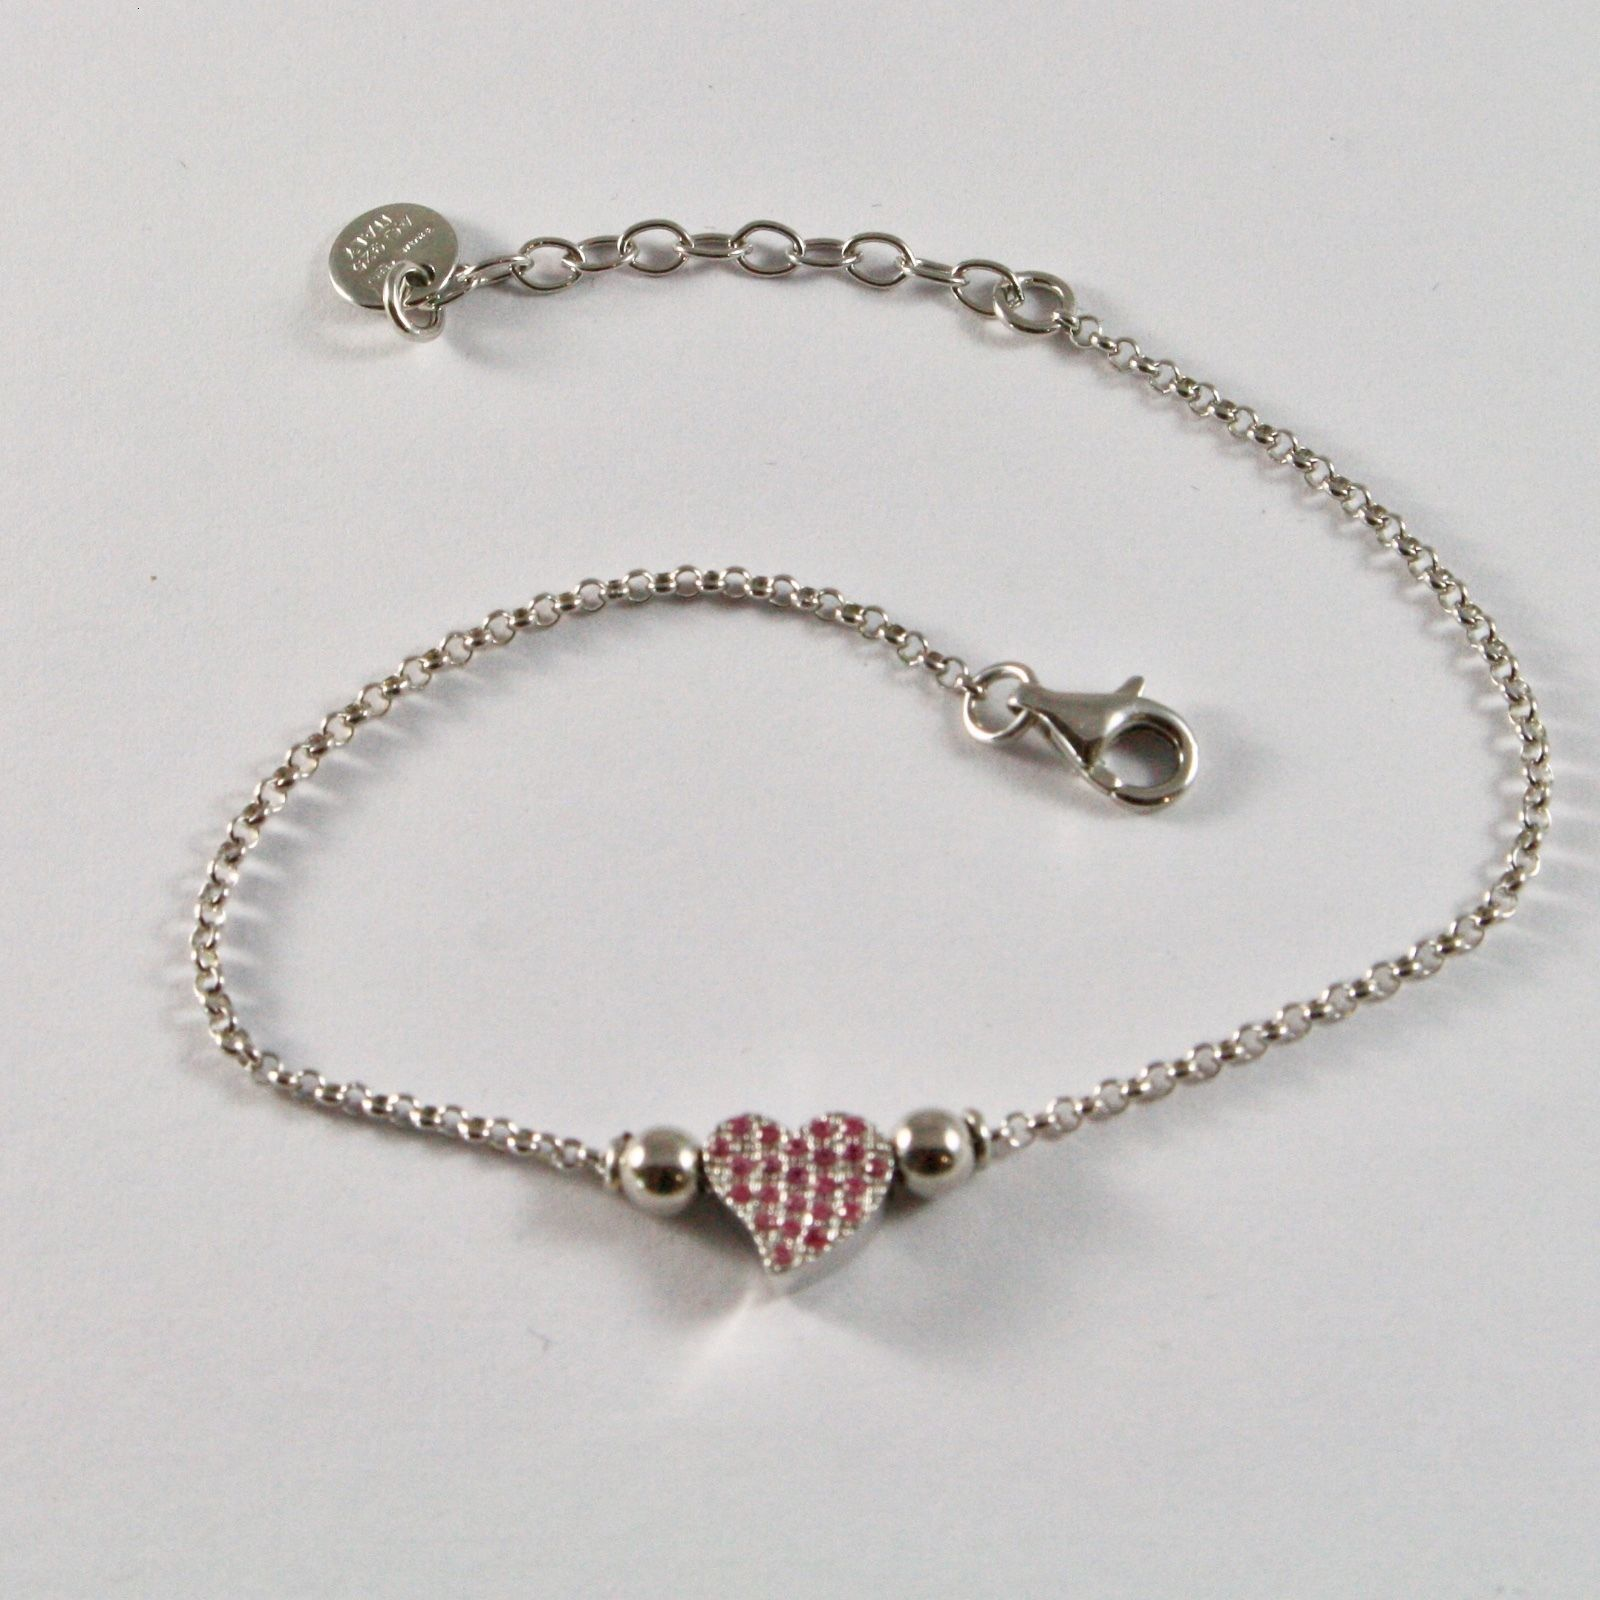 SILVER 925 BRACELET JACK&CO WITH HEART STYLIZED AND ZIRCONIA CUBIC JCB0858